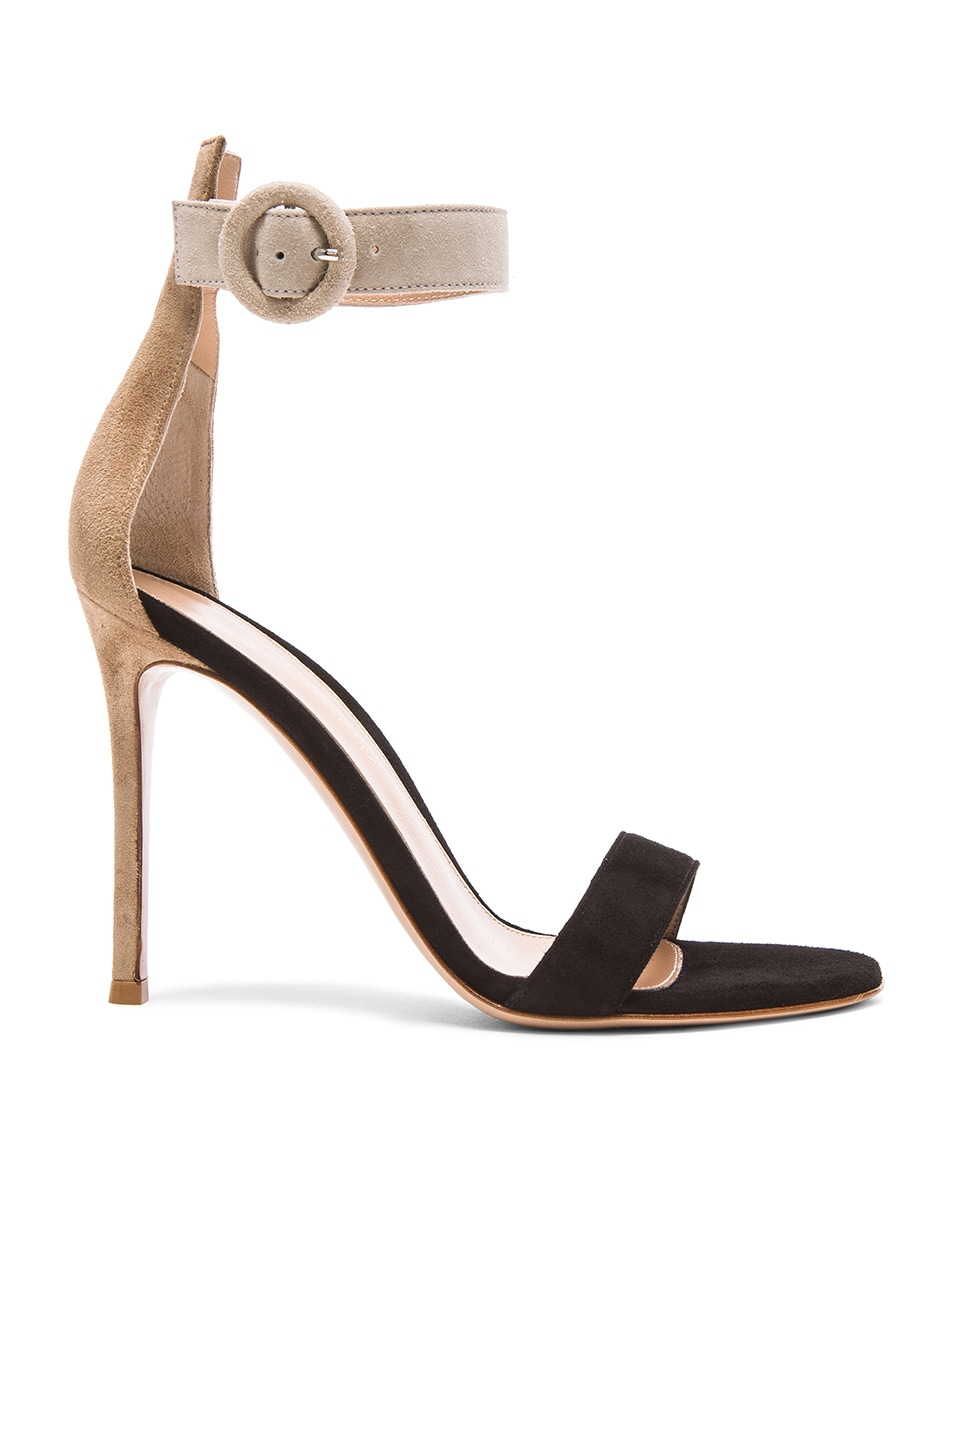 Image 1 of Gianvito Rossi Tri Color Suede Portofino Sandals in Bisque, Black & Ouzo